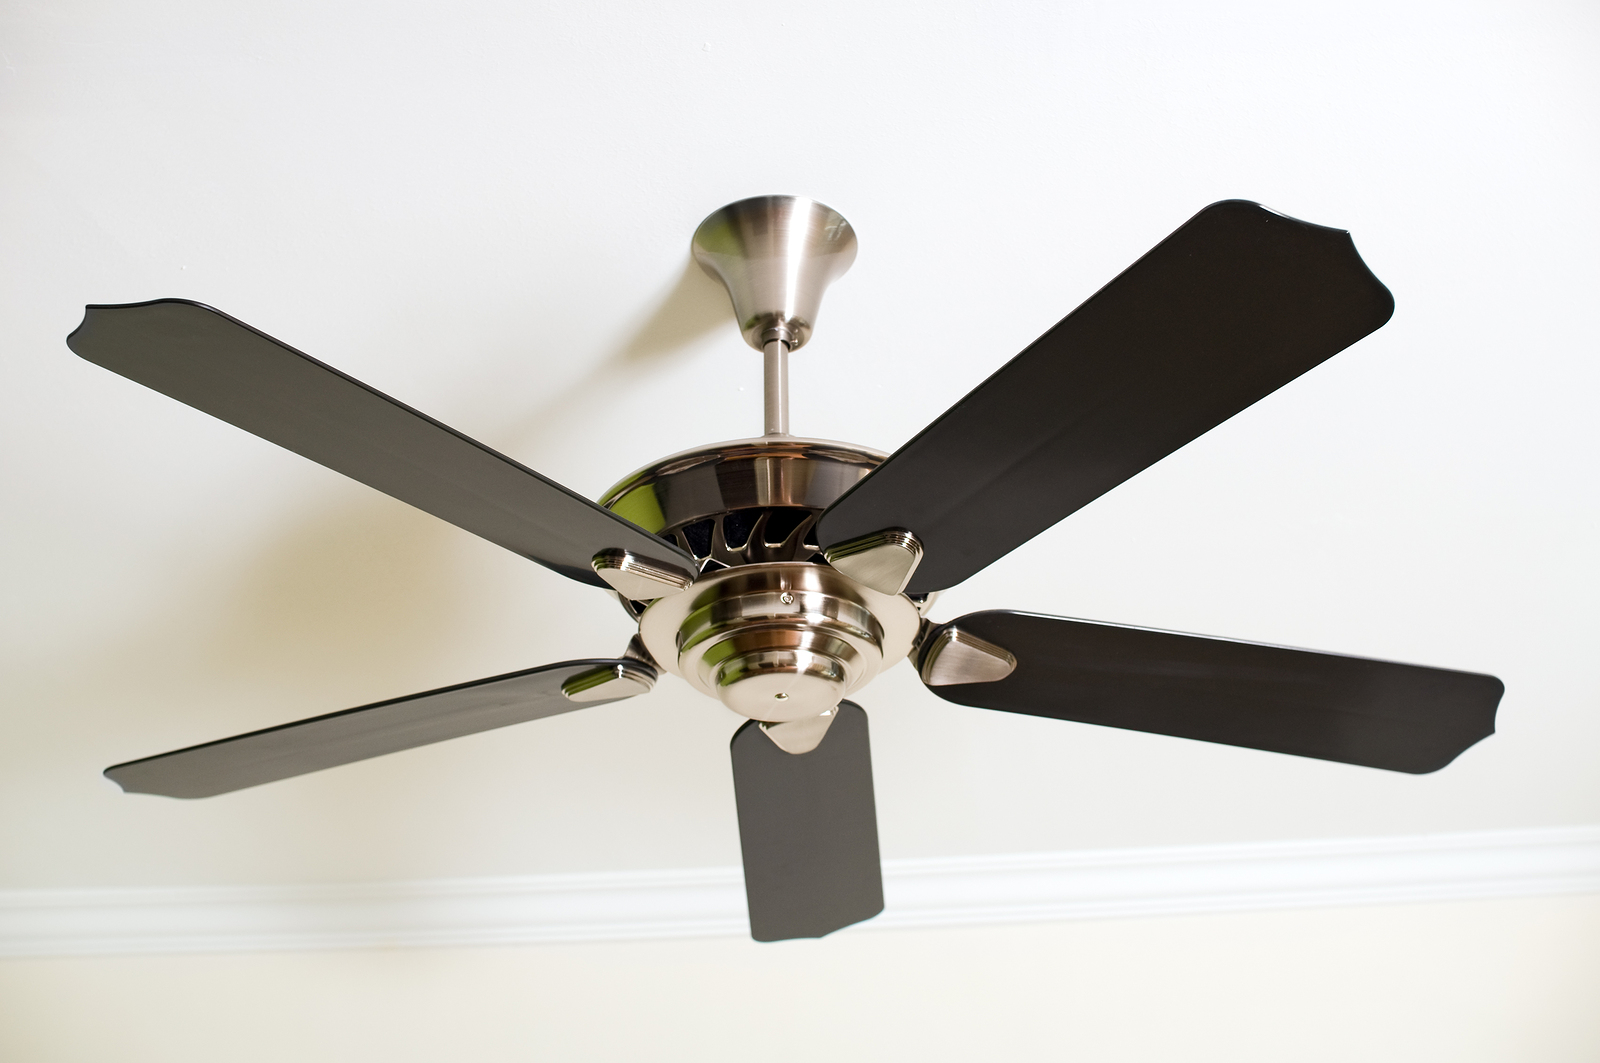 Electrical Ceiling Fans : Keller electric ceiling fans